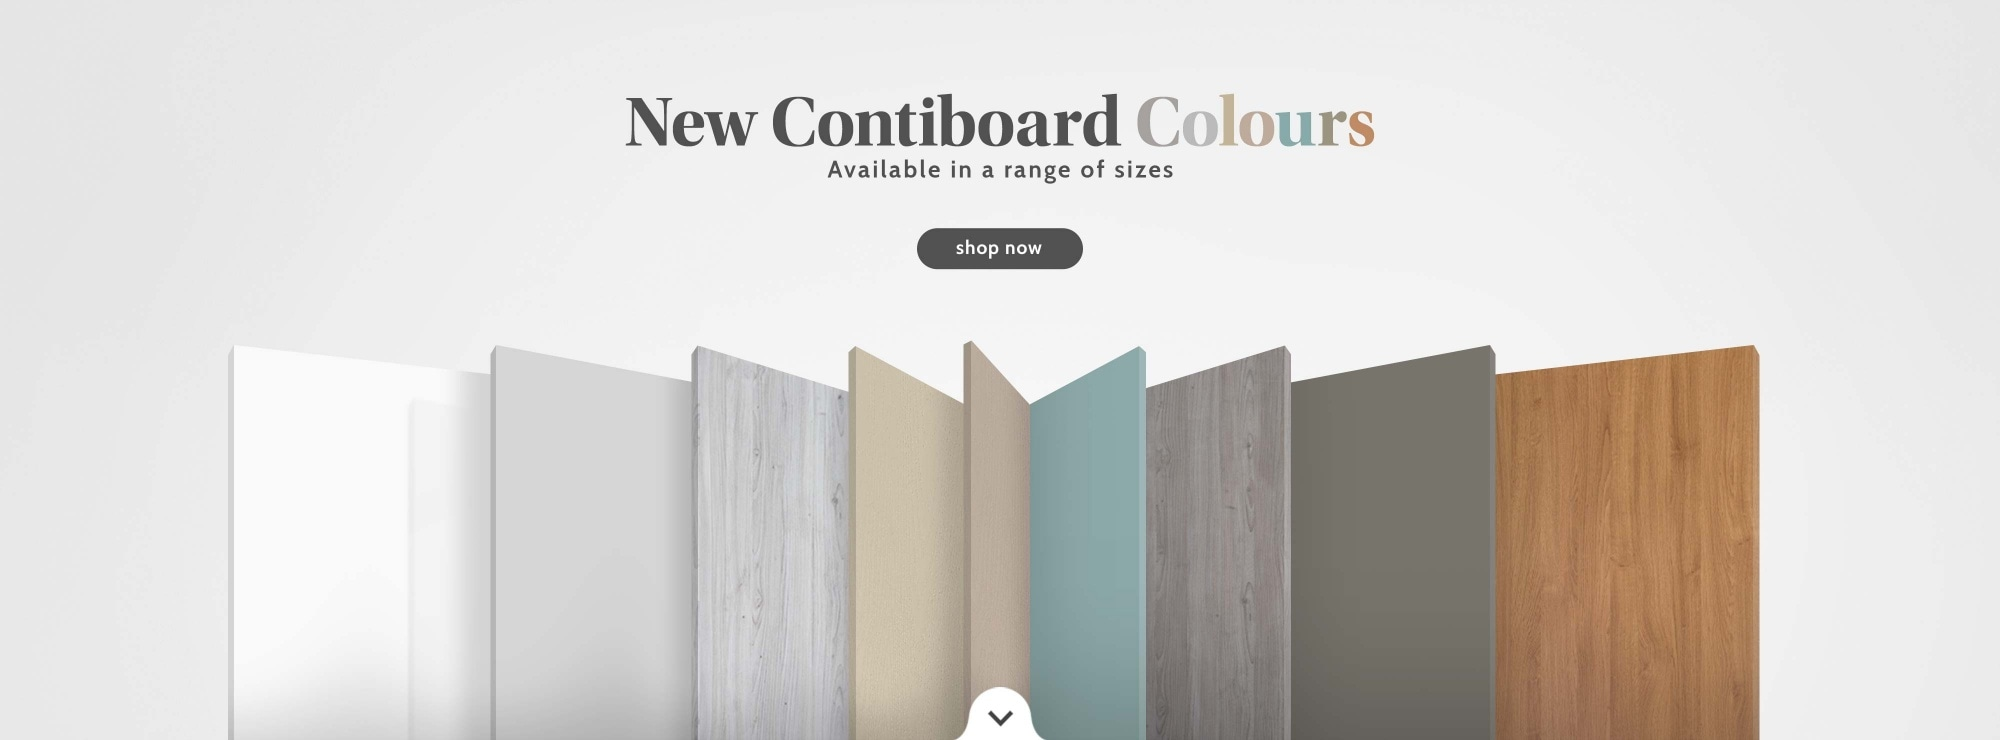 New Contiboard Colours